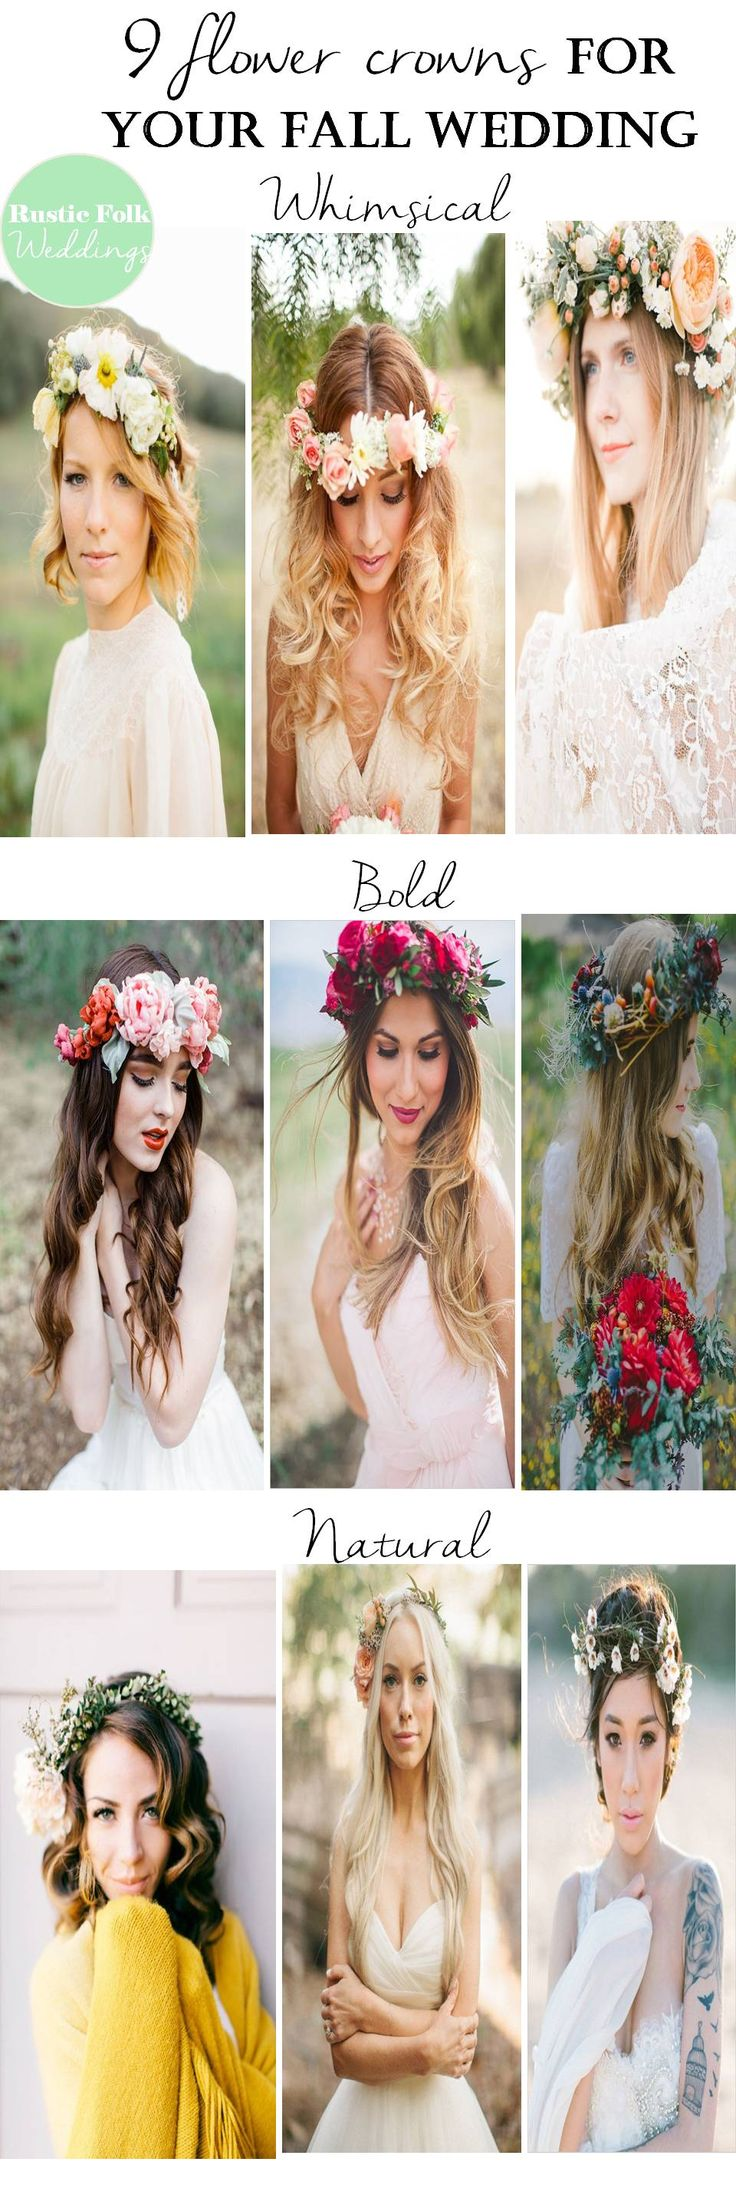 9 Flower Crowns For Your Fall Wedding